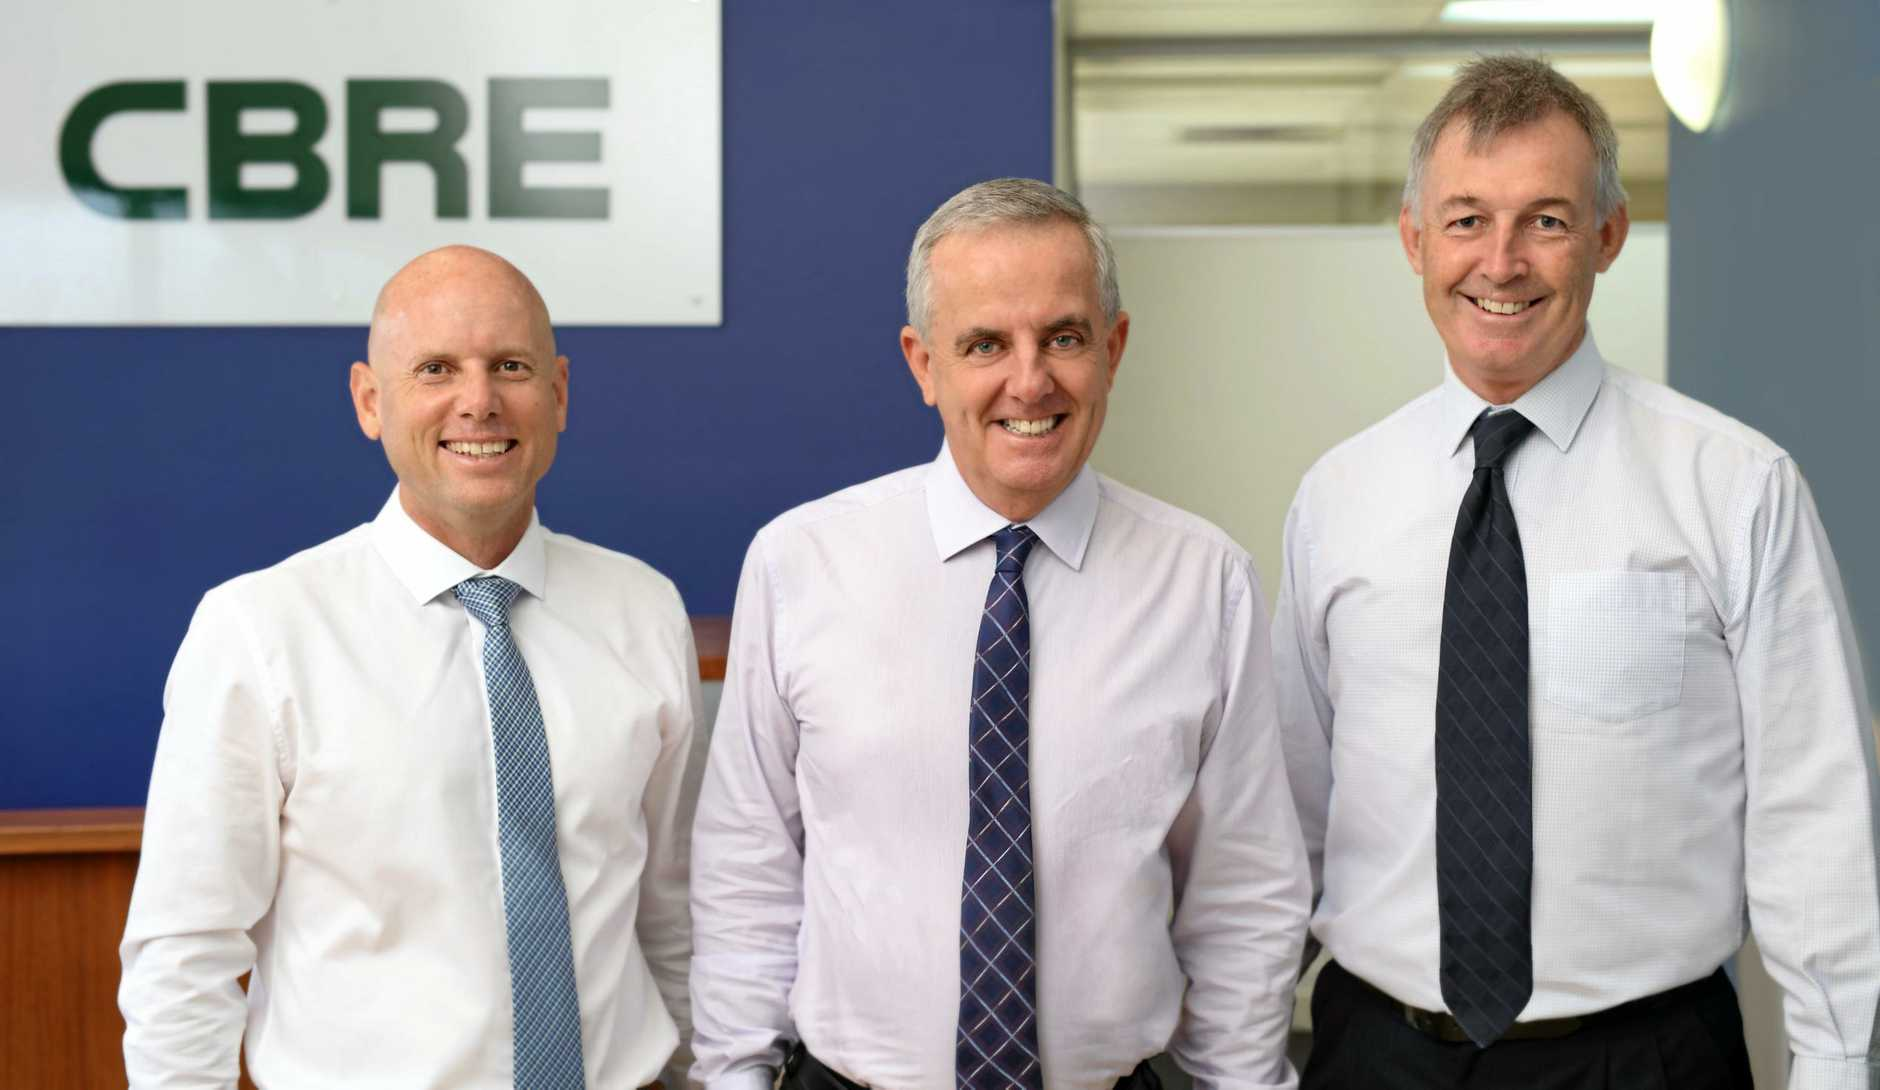 VALUED ADDITION: CBRE's Russell Madden, Rem Rafter and David Lovell.